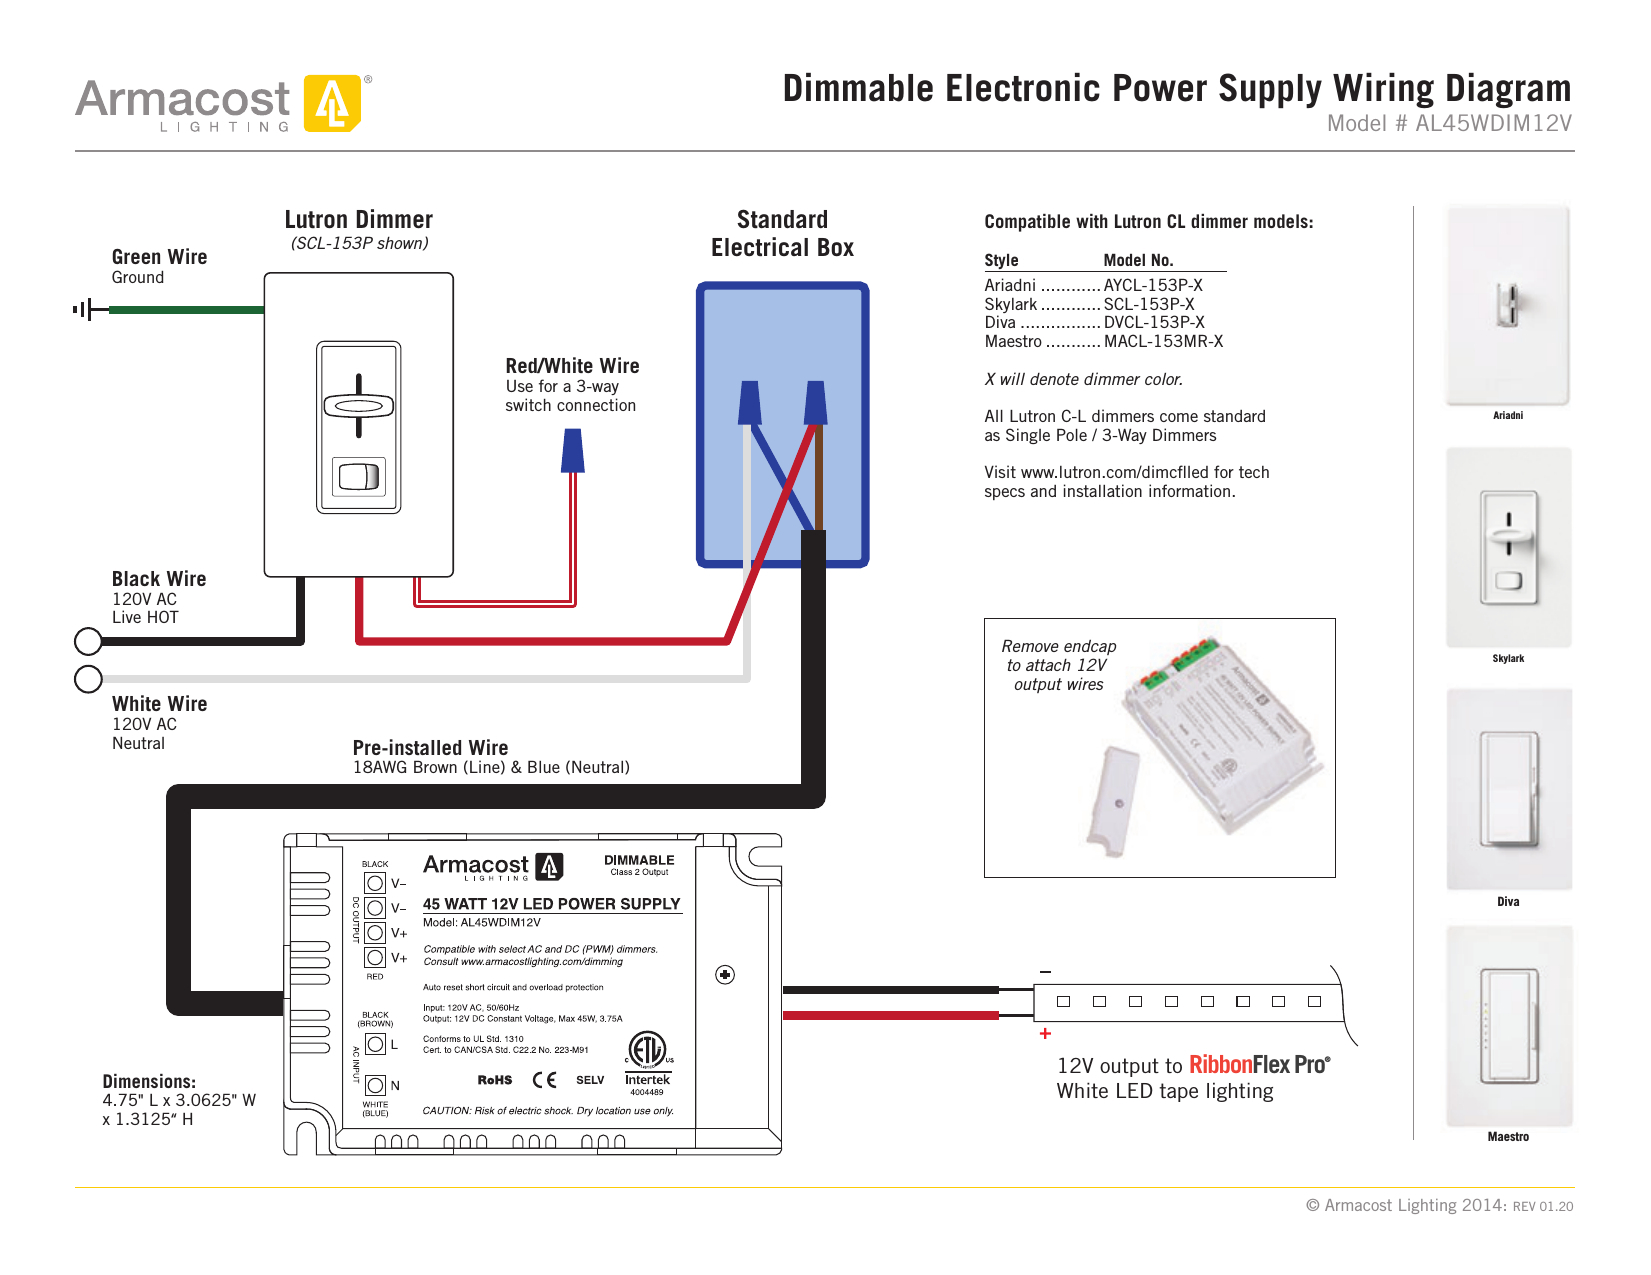 lutron dimmer wiring diagram Collection-lutron diva cl wiring diagram Collection lutron skylark dimmer wiring diagram Unique Lutron Dimmer Switch 17-k